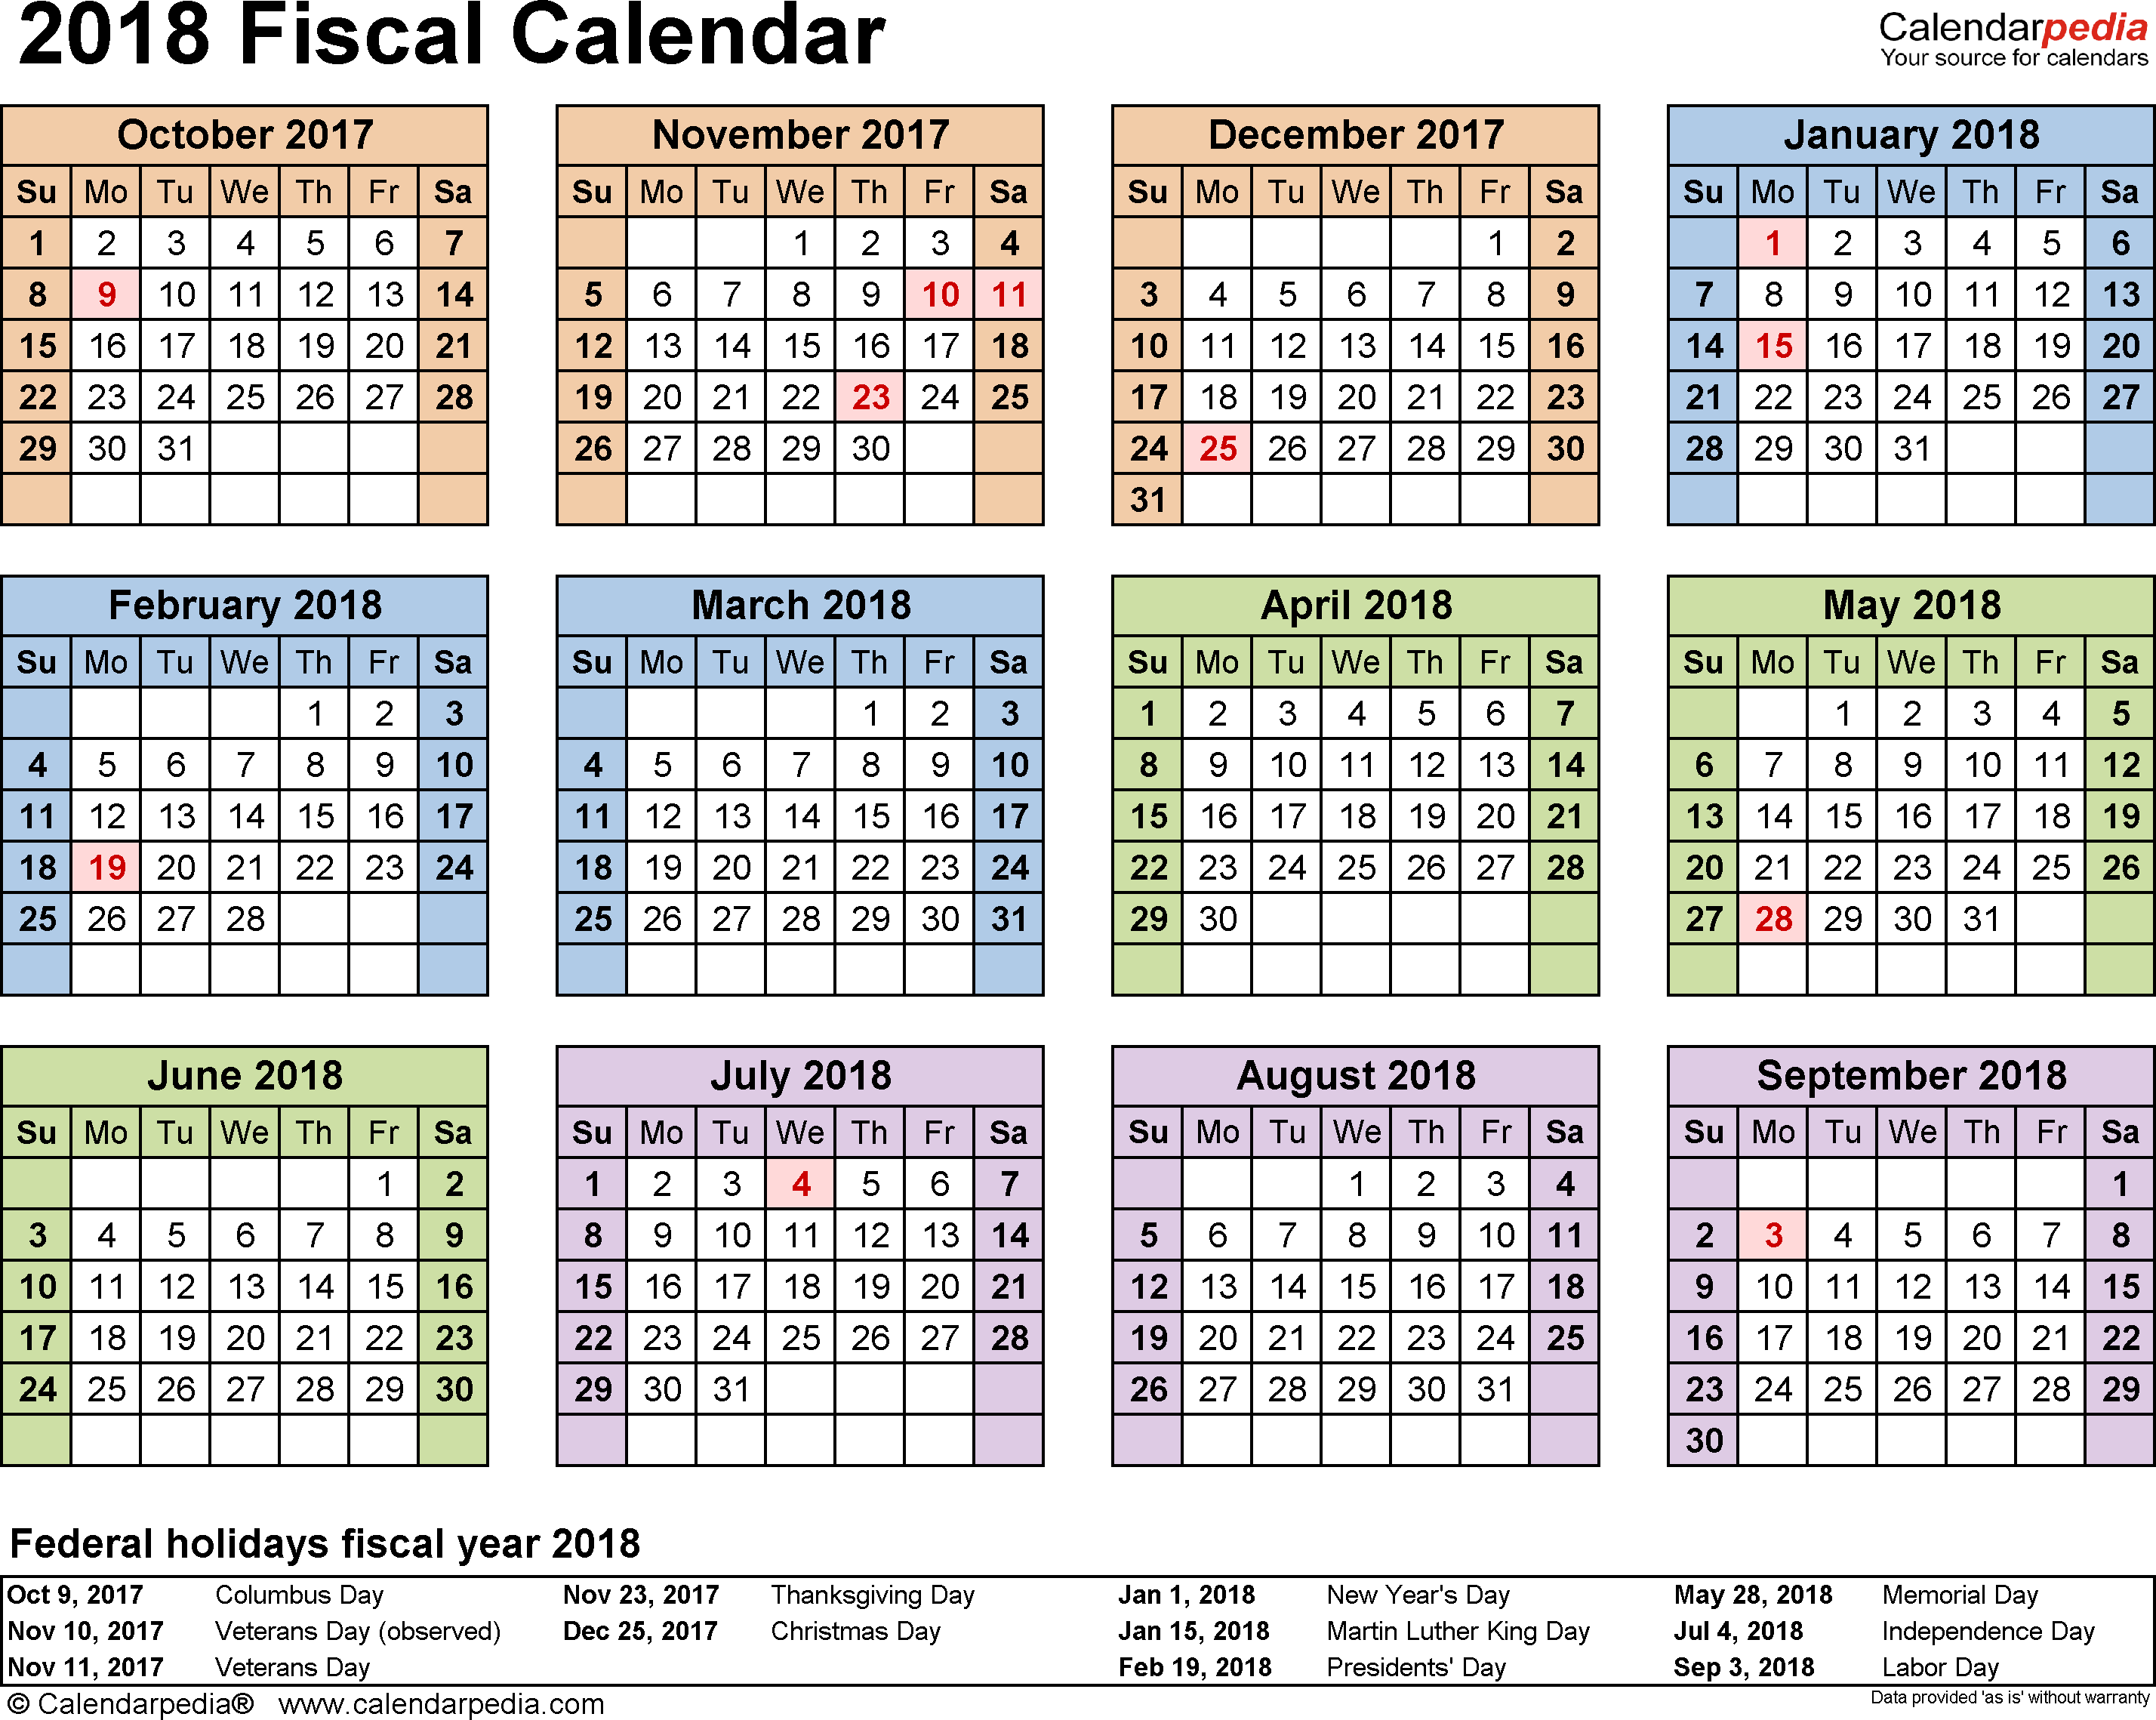 Download Template 4: Fiscal year calendar 2018 for Microsoft Excel (.xlsx file), landscape, 1 page, year at a glance